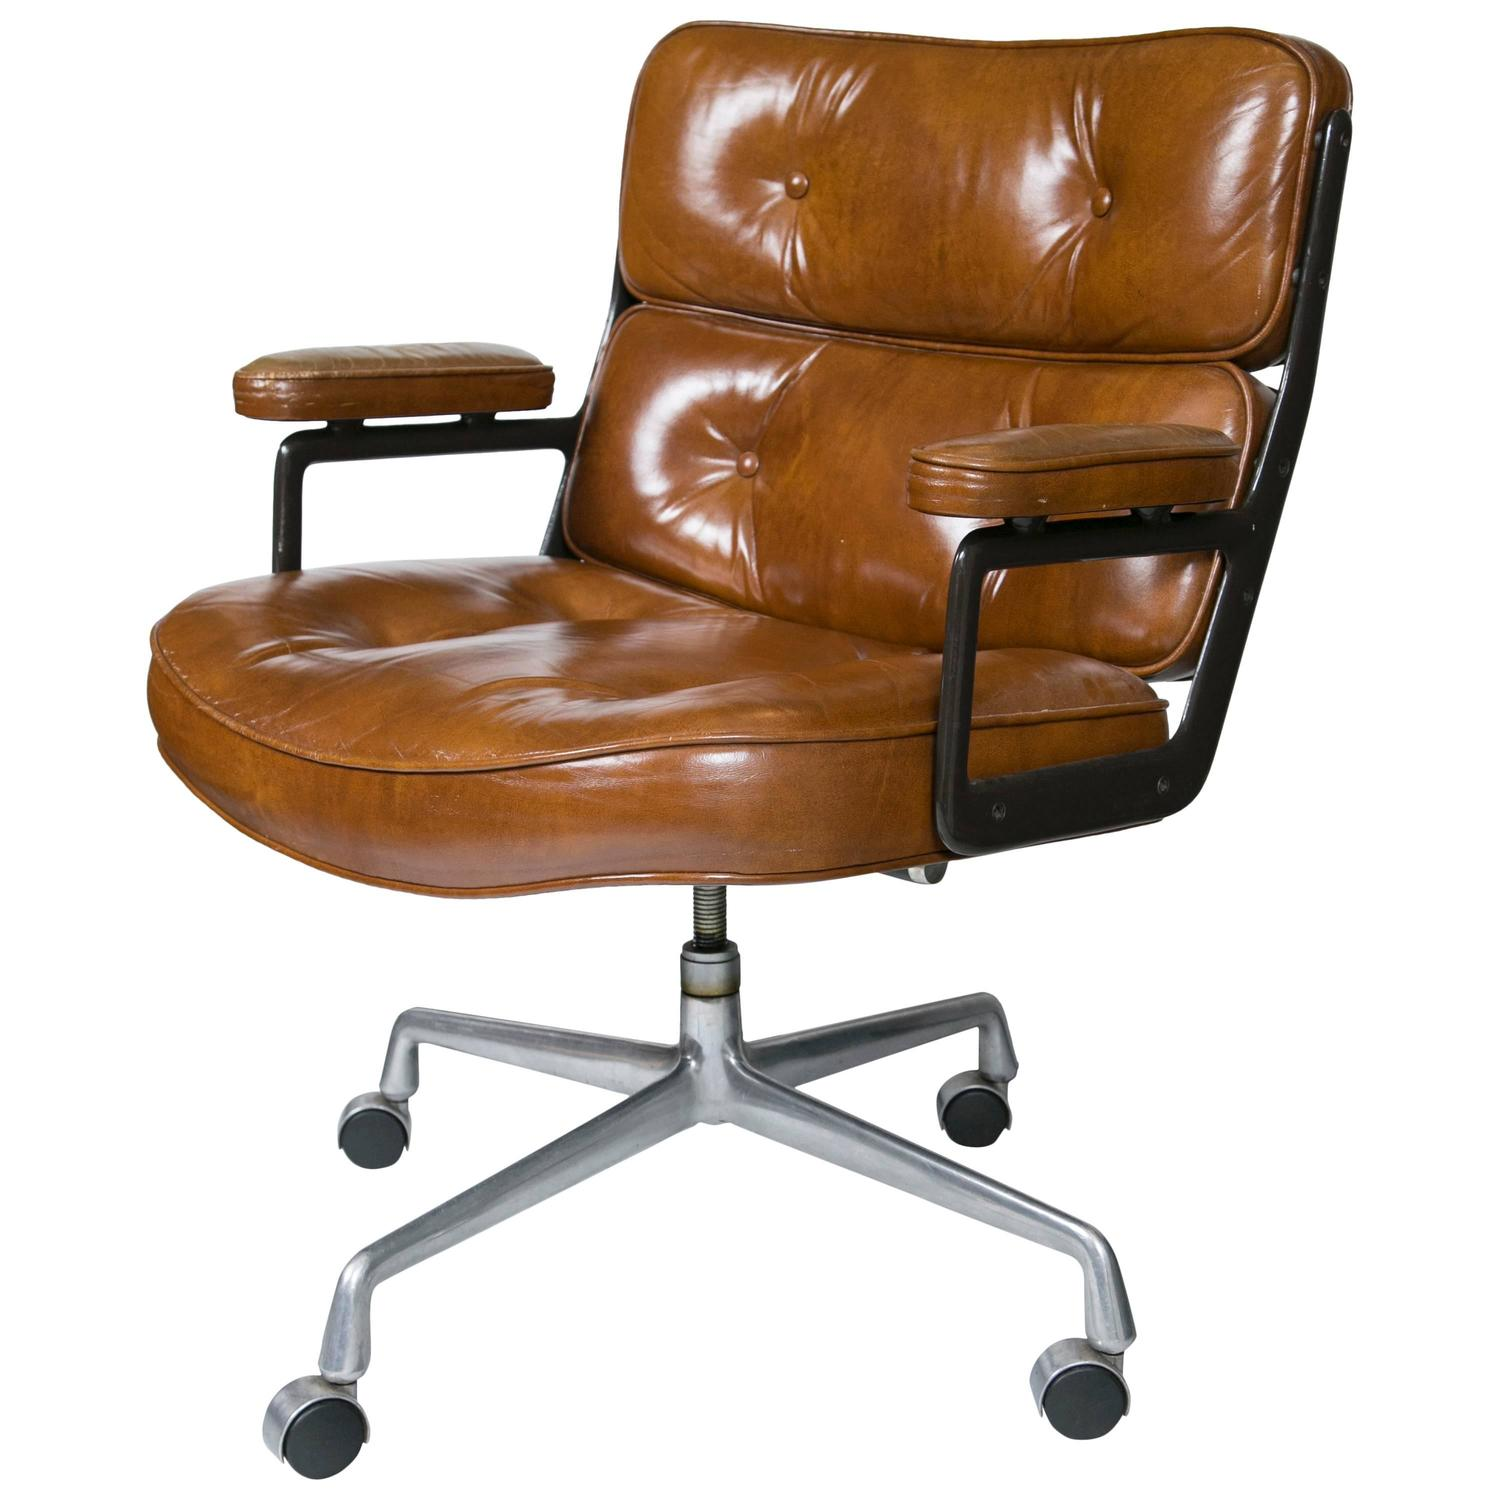 Eames executive chair by herman miller at 1stdibs - Eames chair herman miller ...